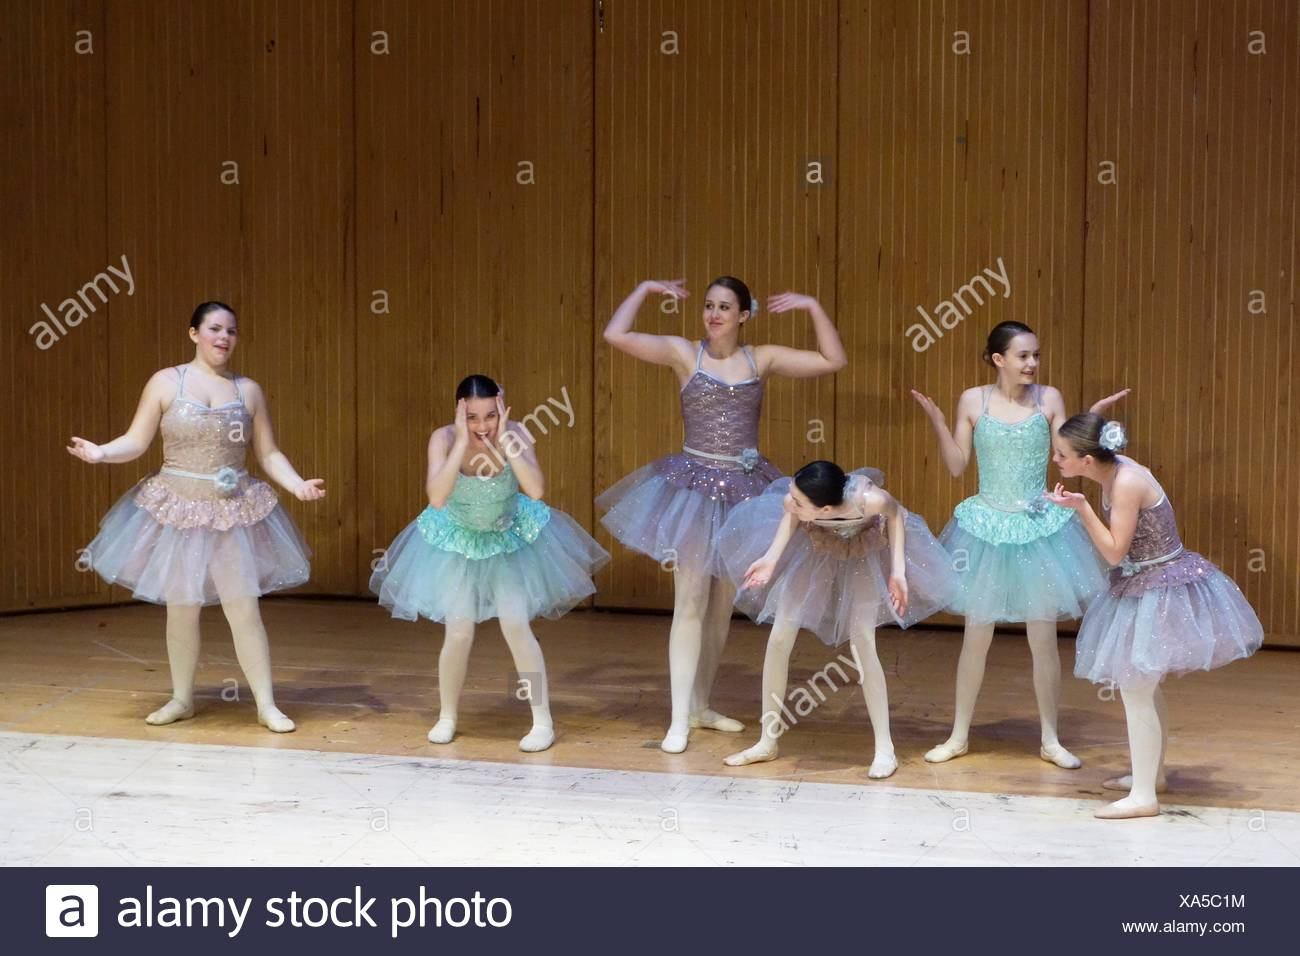 49c340bb2 Ballet Dancers in Tutus Performing on Stage, Geneseo, New York, USA ...